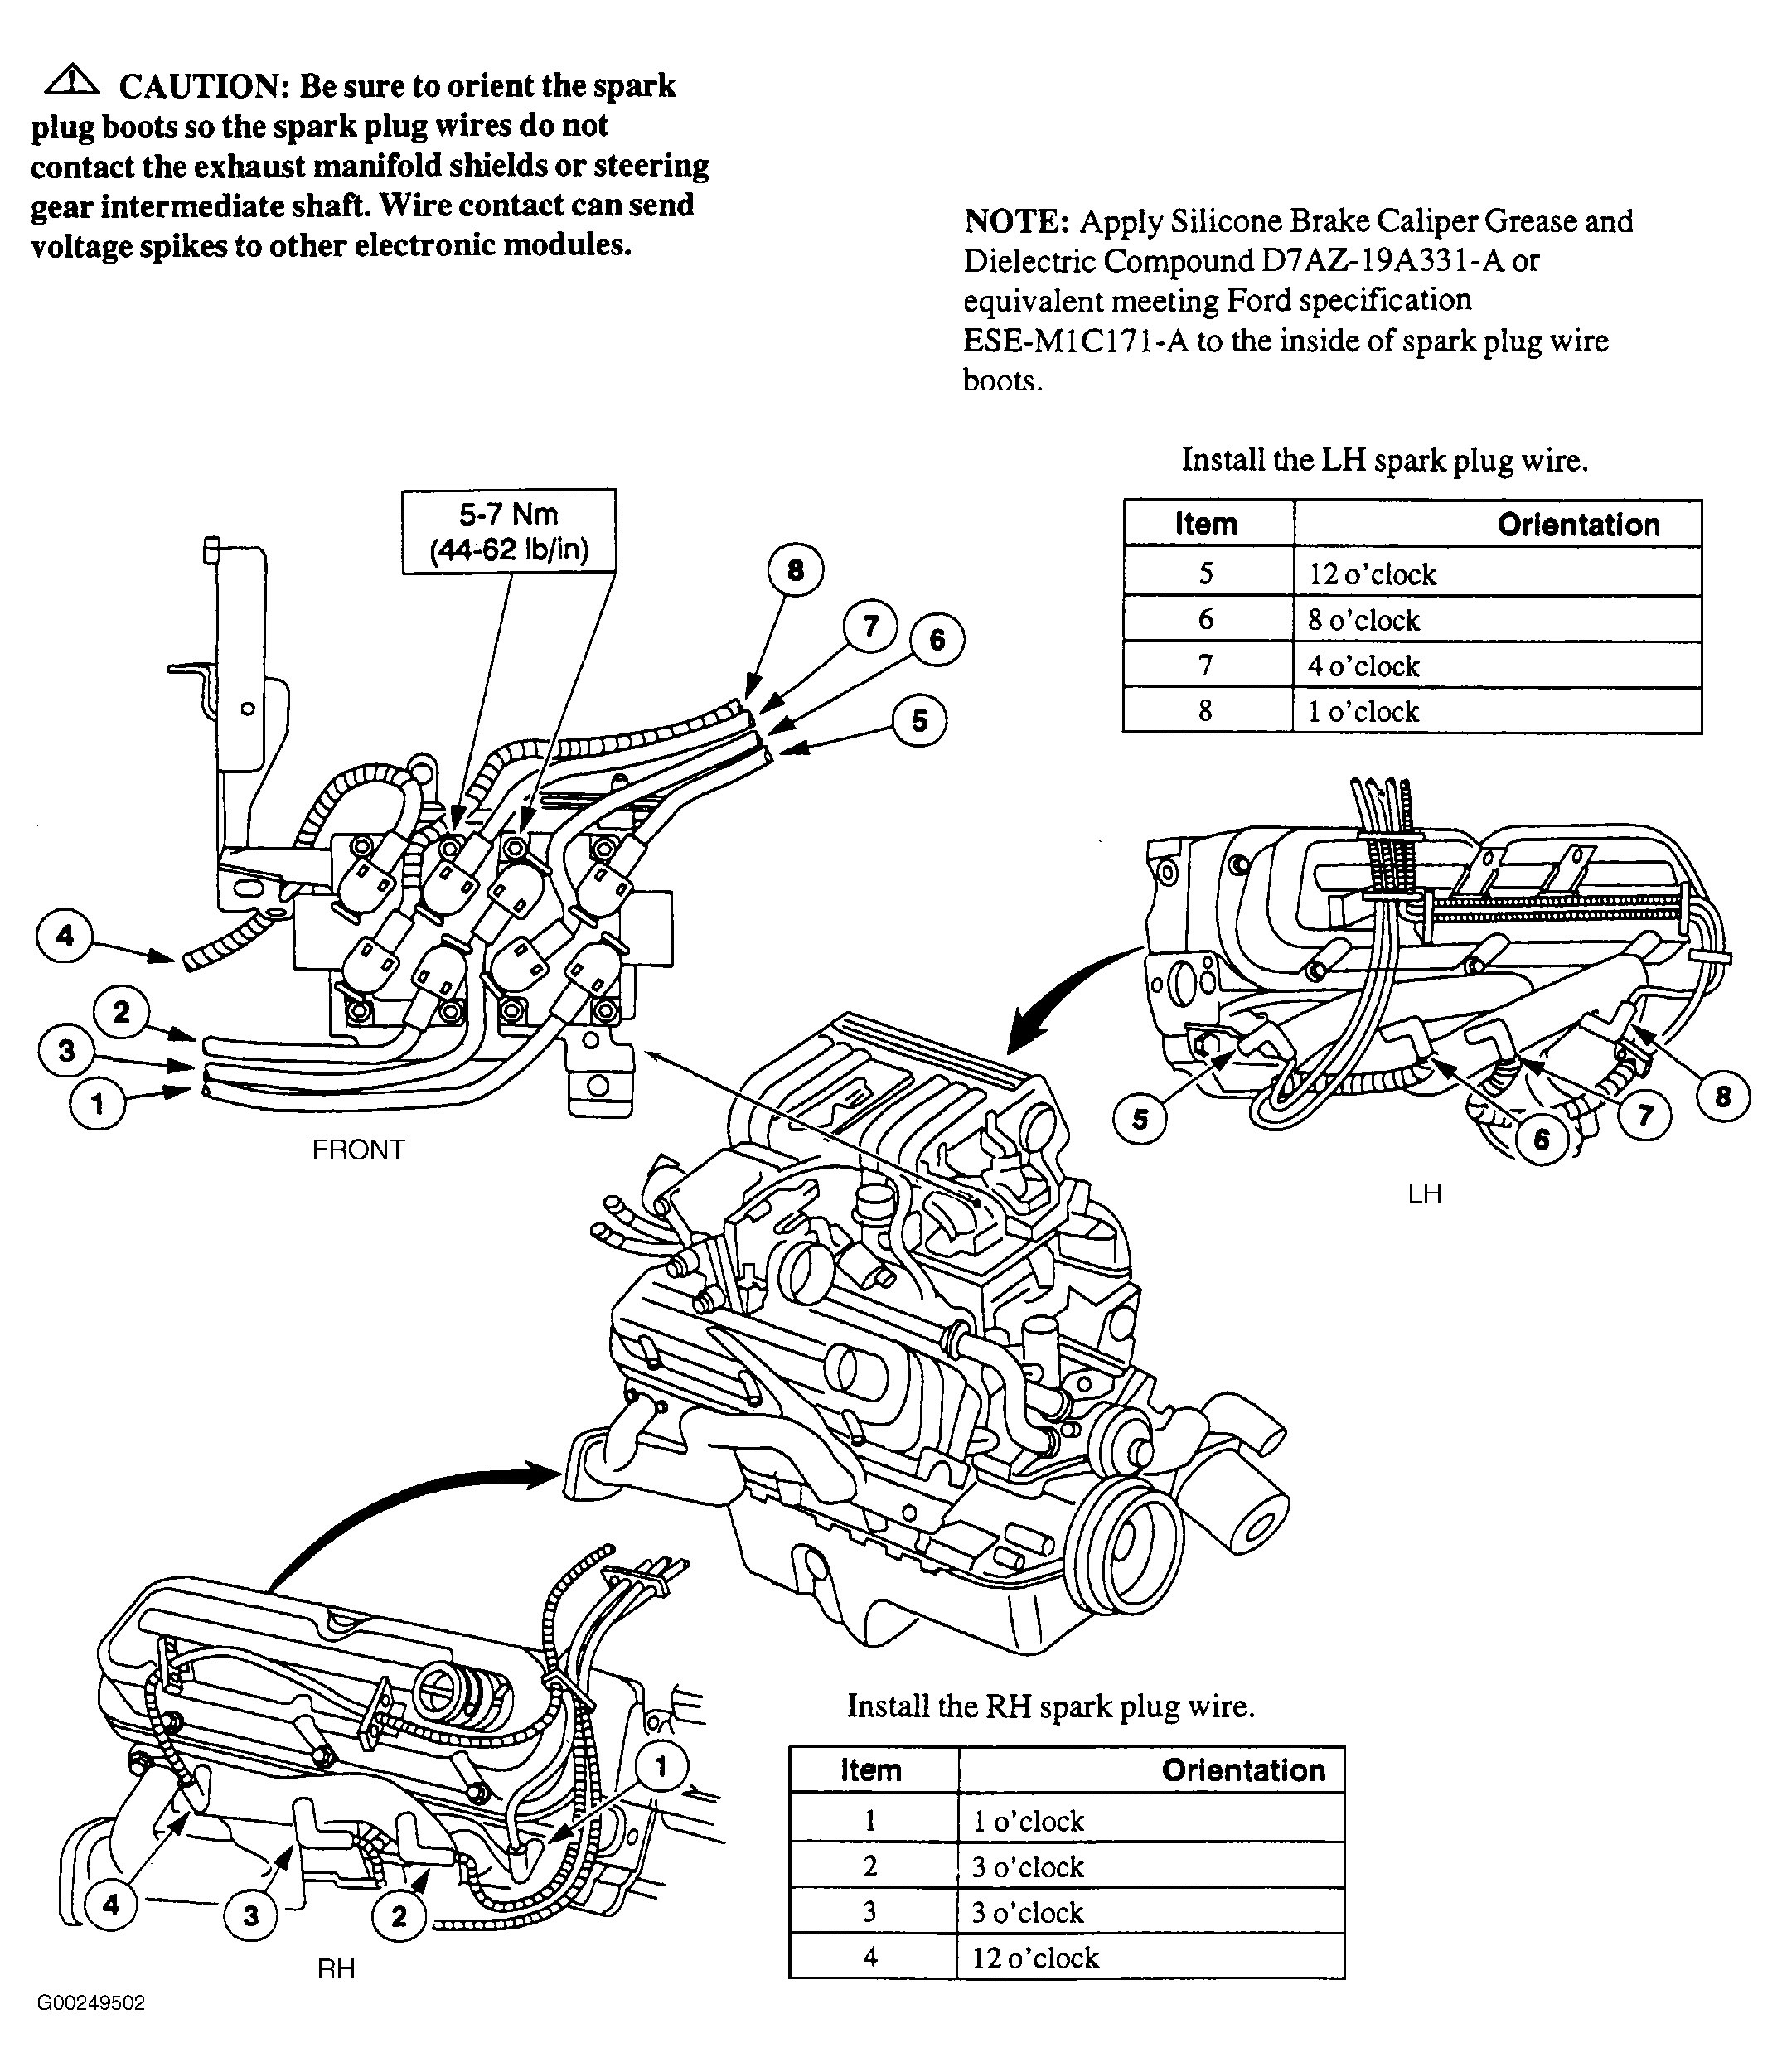 1994 Ford Explorer 4 0 Engine Diagram